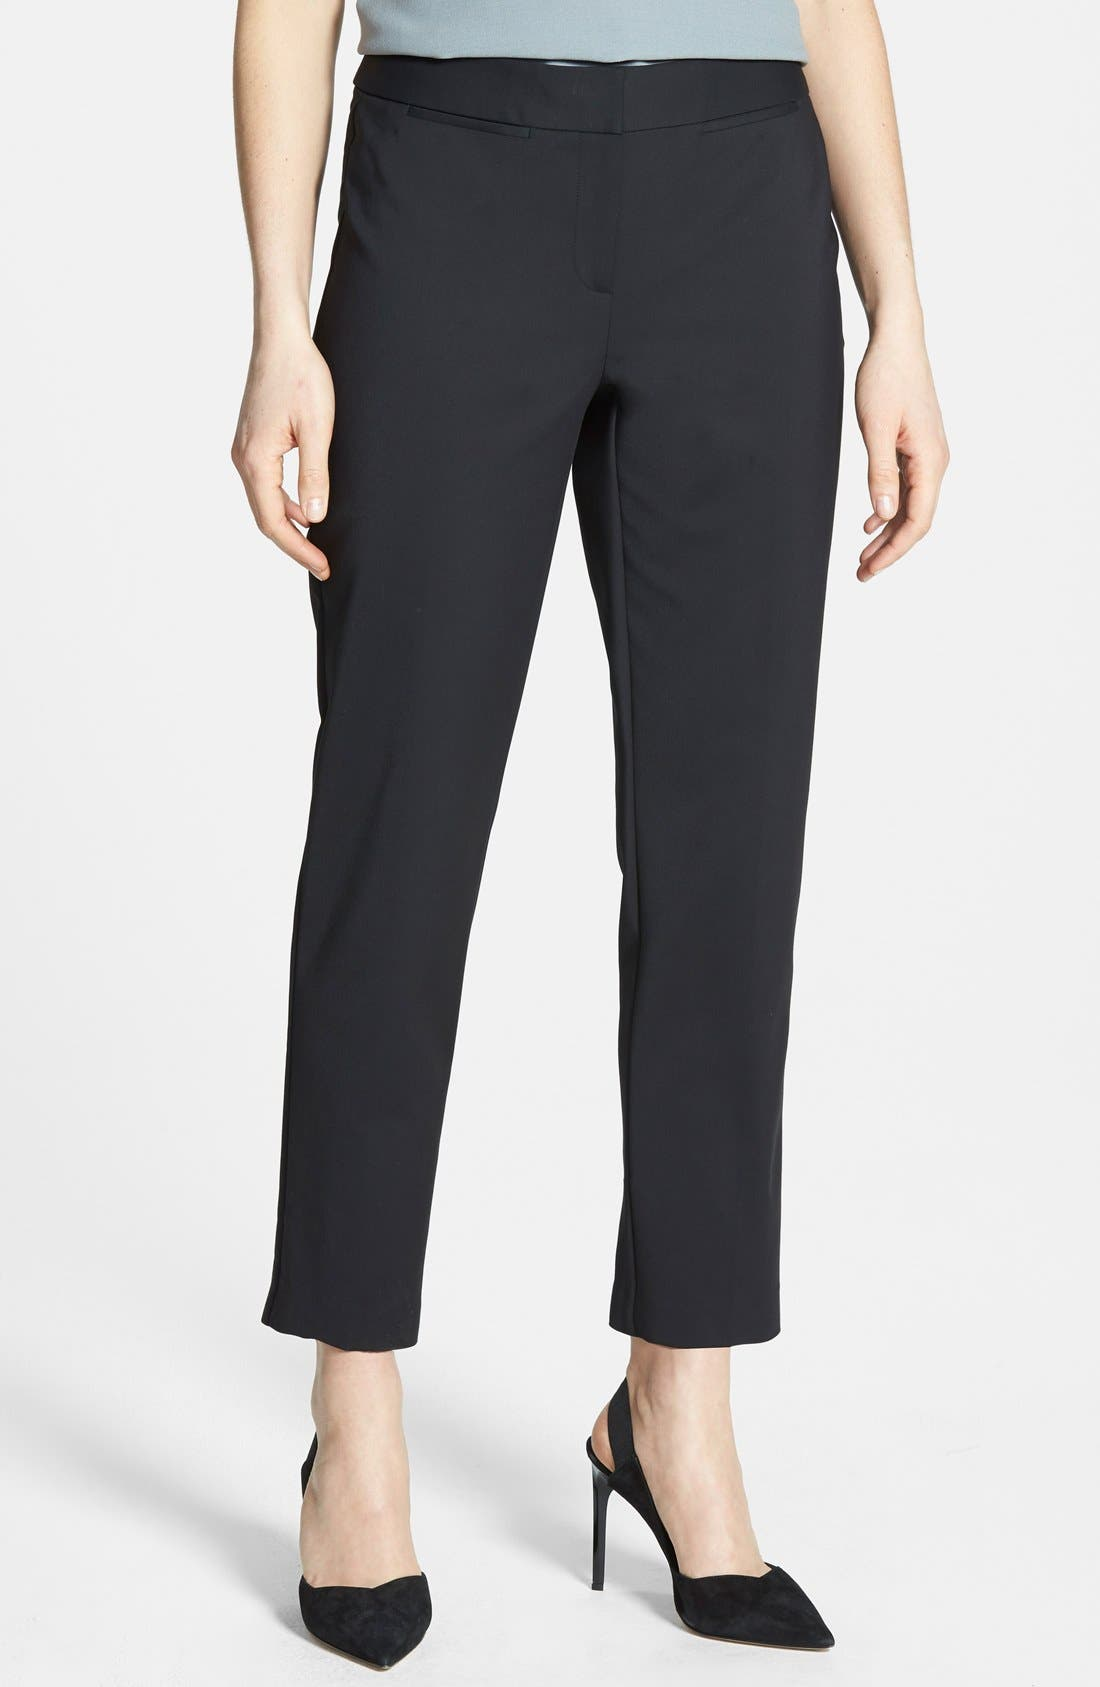 Alternate Image 1 Selected - Nordstrom Collection 'Veloria' Slim Ankle Pants